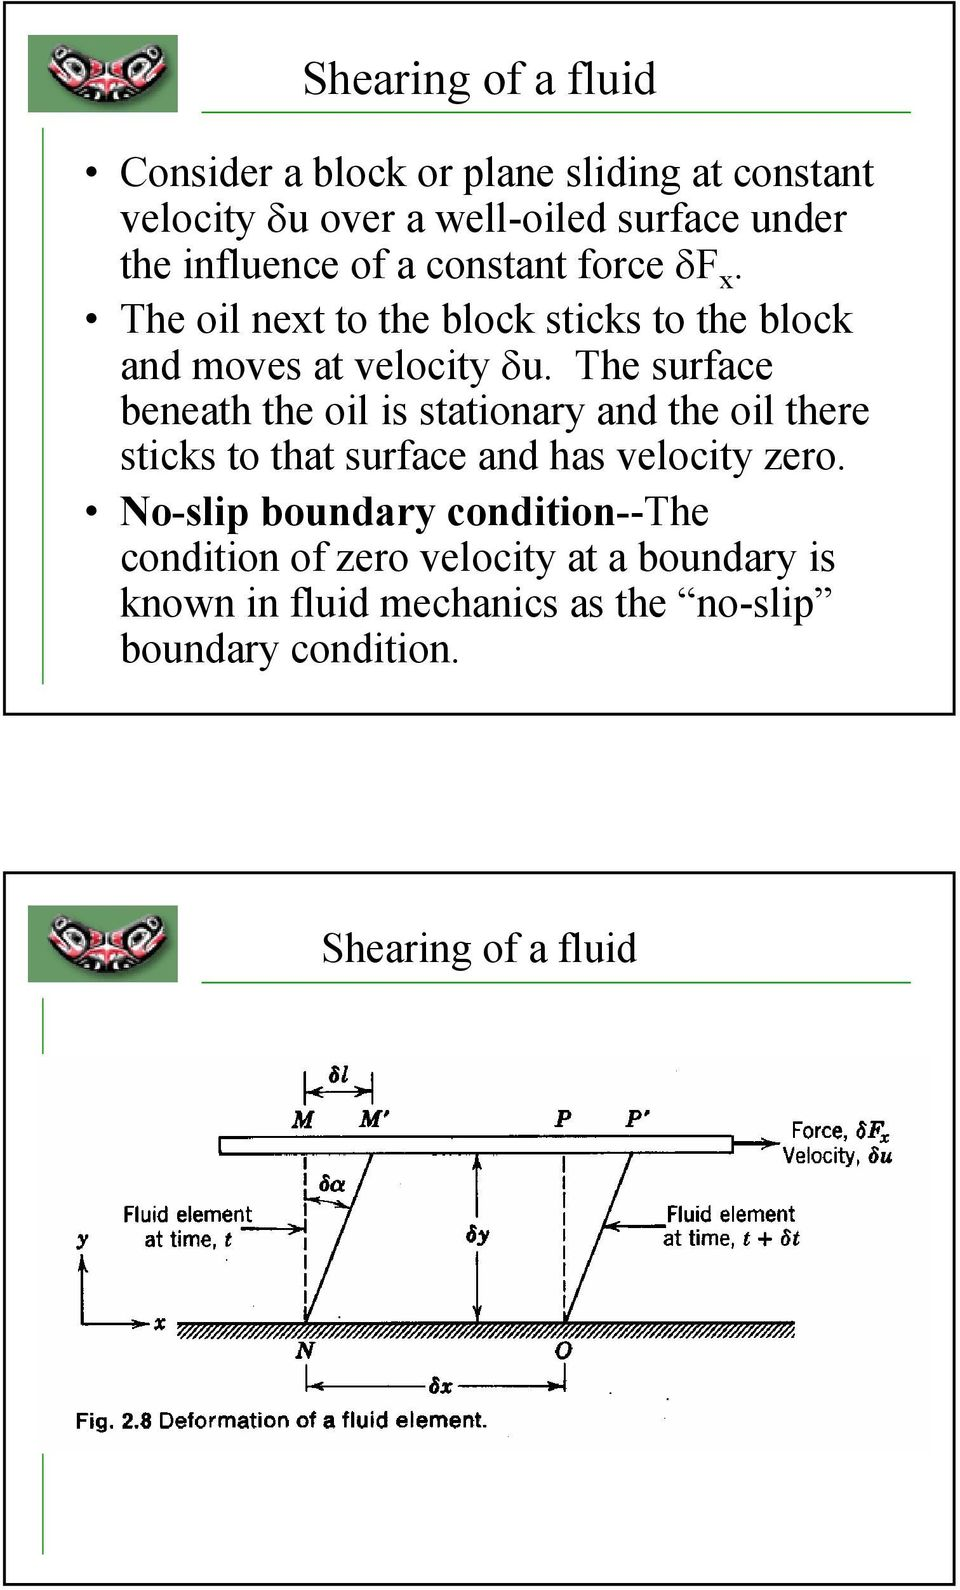 The surface beneath the oil is stationary and the oil there sticks to that surface and has velocity zero.